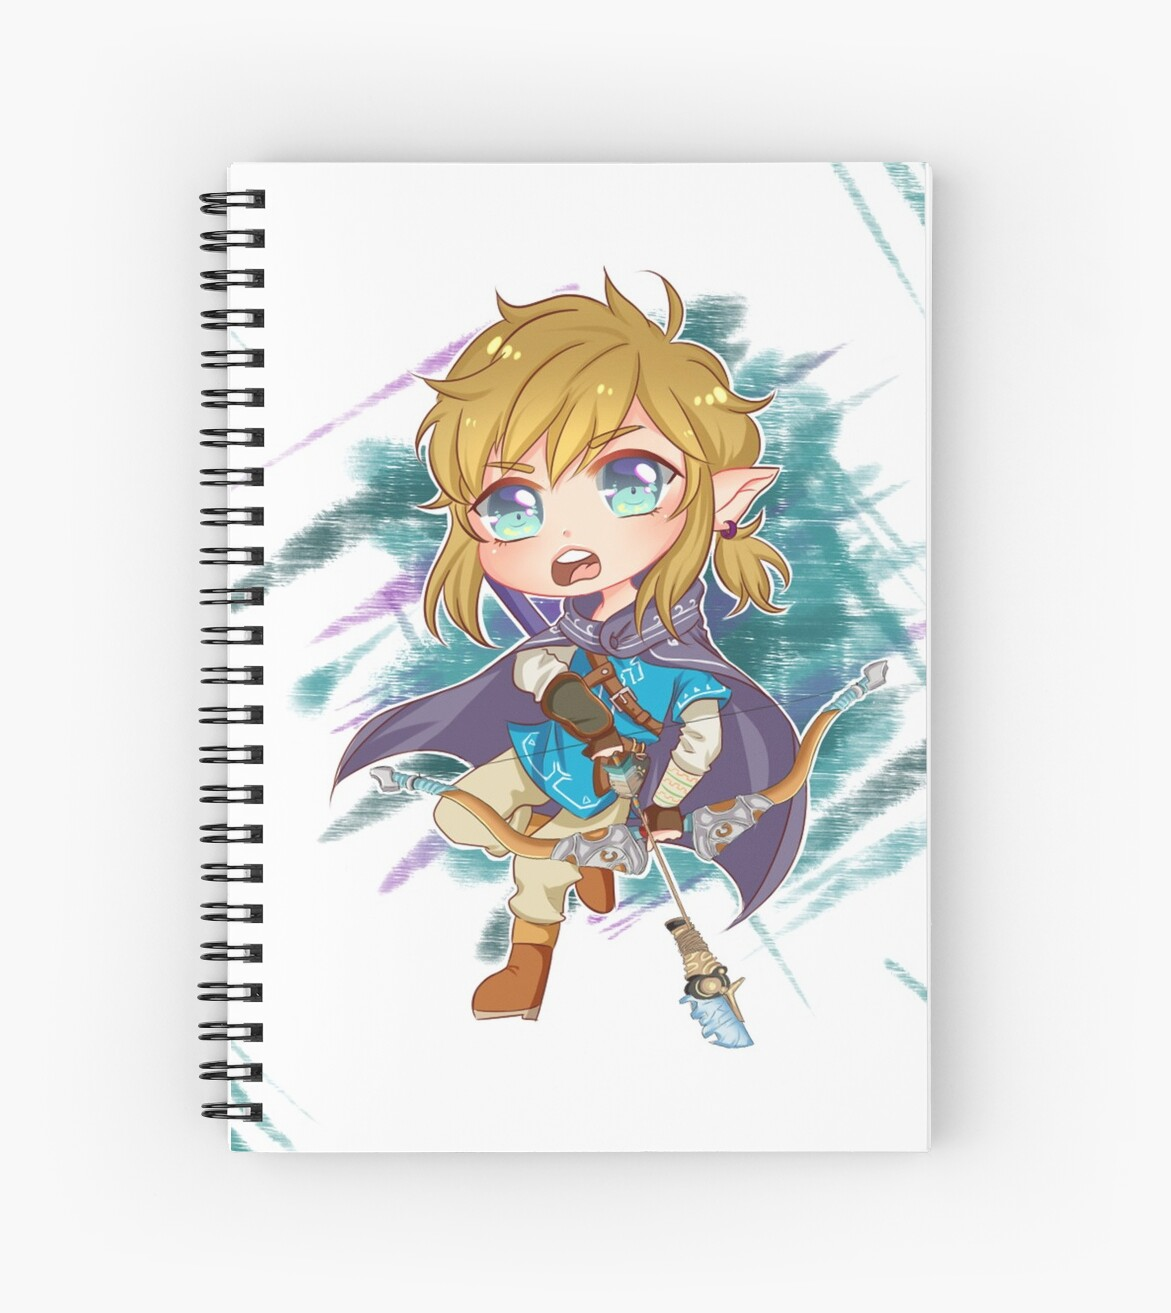 Chibi Link Botw Spiral Notebook By Jeffreykilljoy